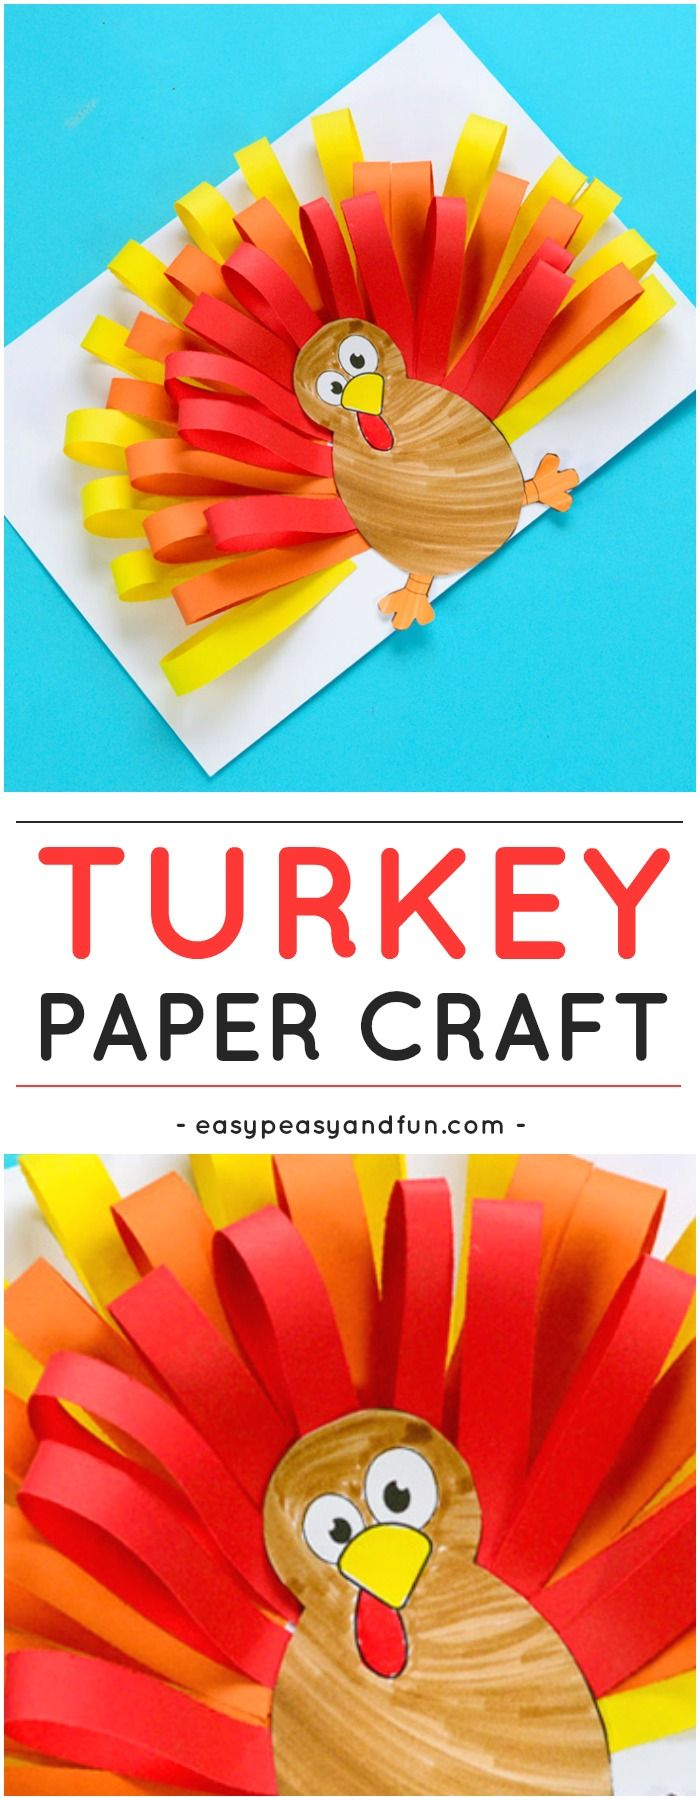 Creative Ways To Decorate A Turkey On Paper